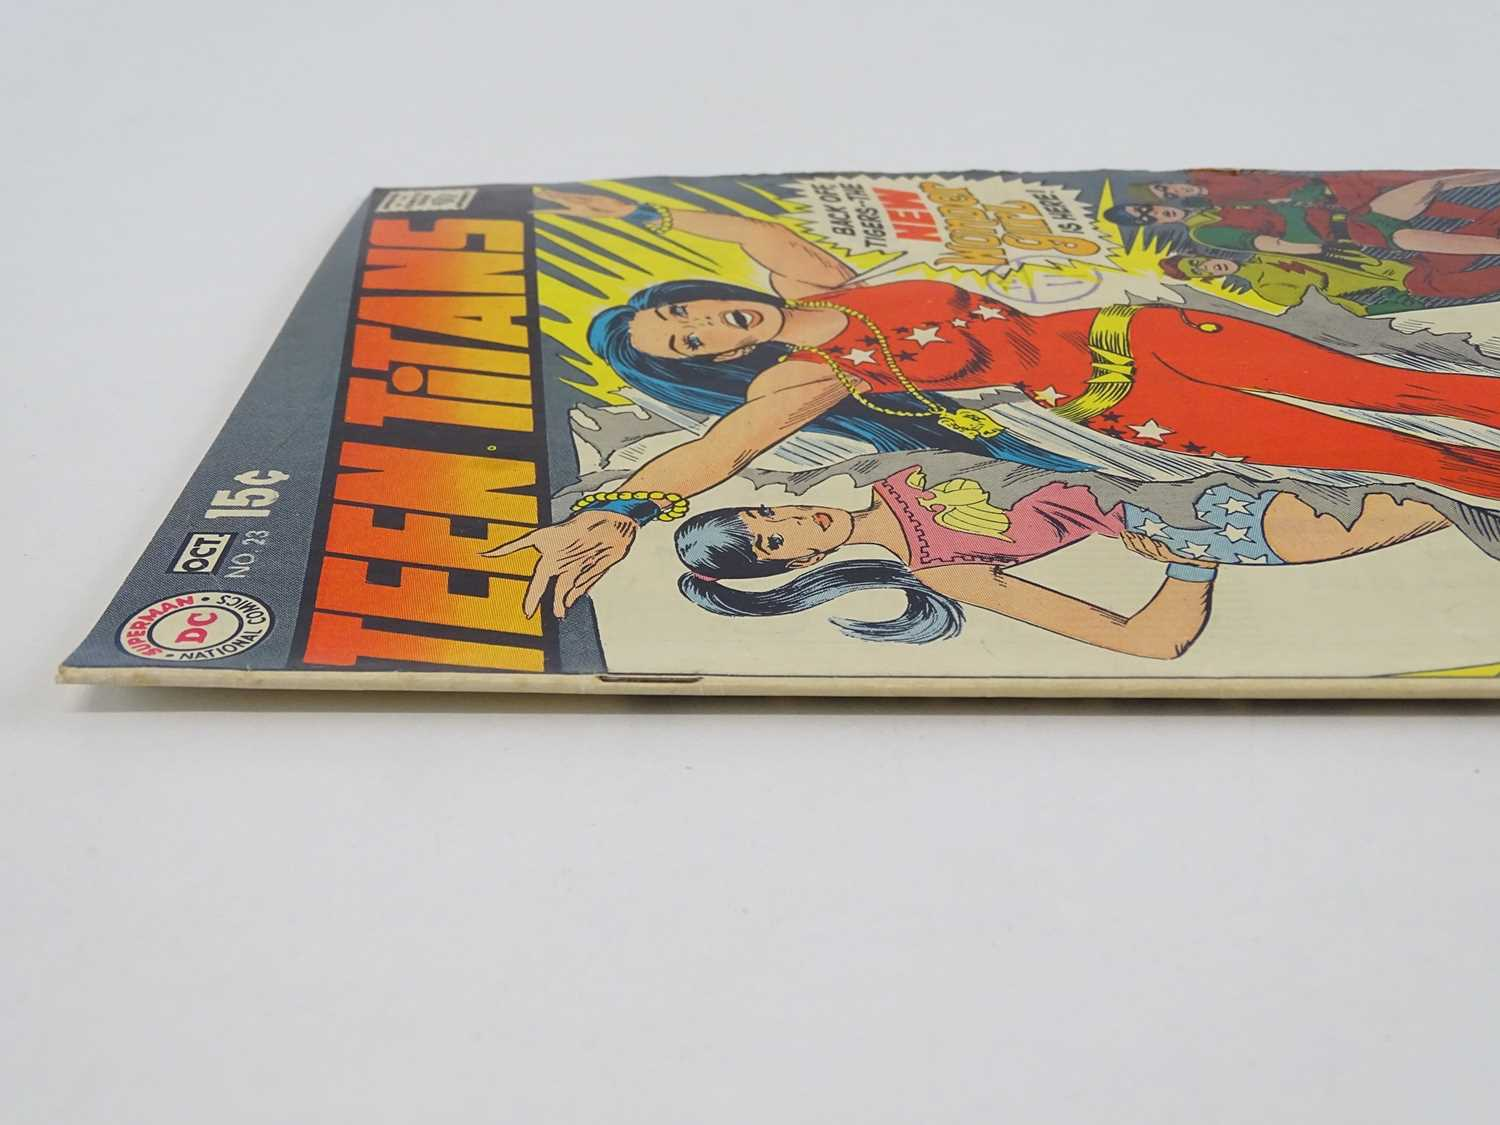 TEEN TITANS #23 - (1969 - DC - UK Cover Price) - Classic DC Cover - New costume for Wonder Girl - Image 8 of 9